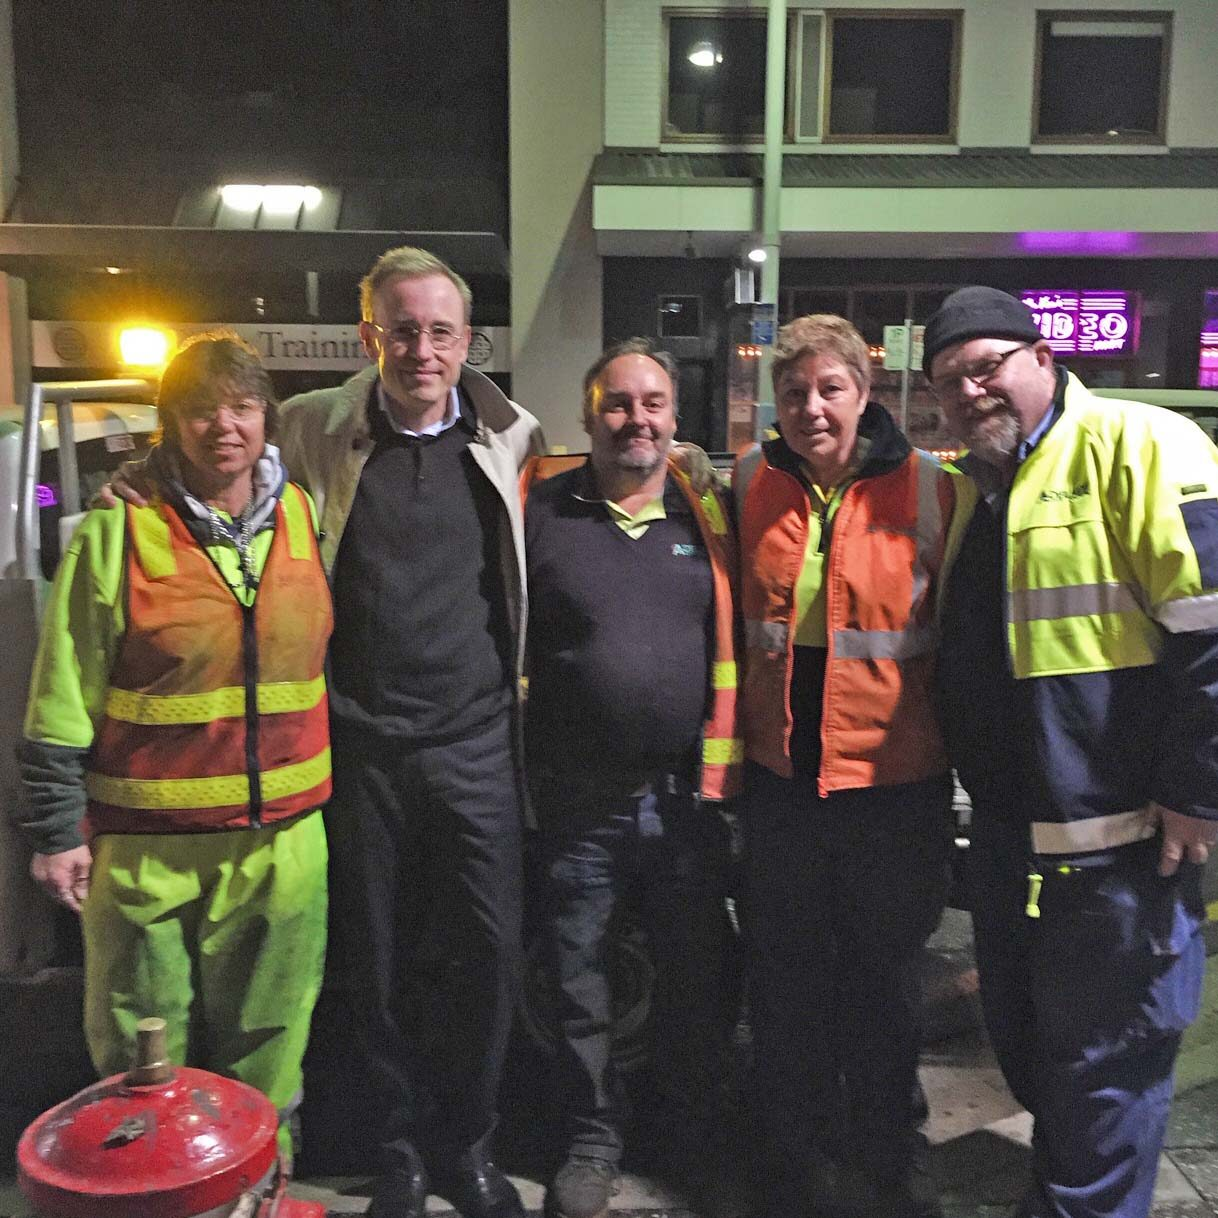 Lord Mayor Martin Haese with the City of Adelaide Depot Team